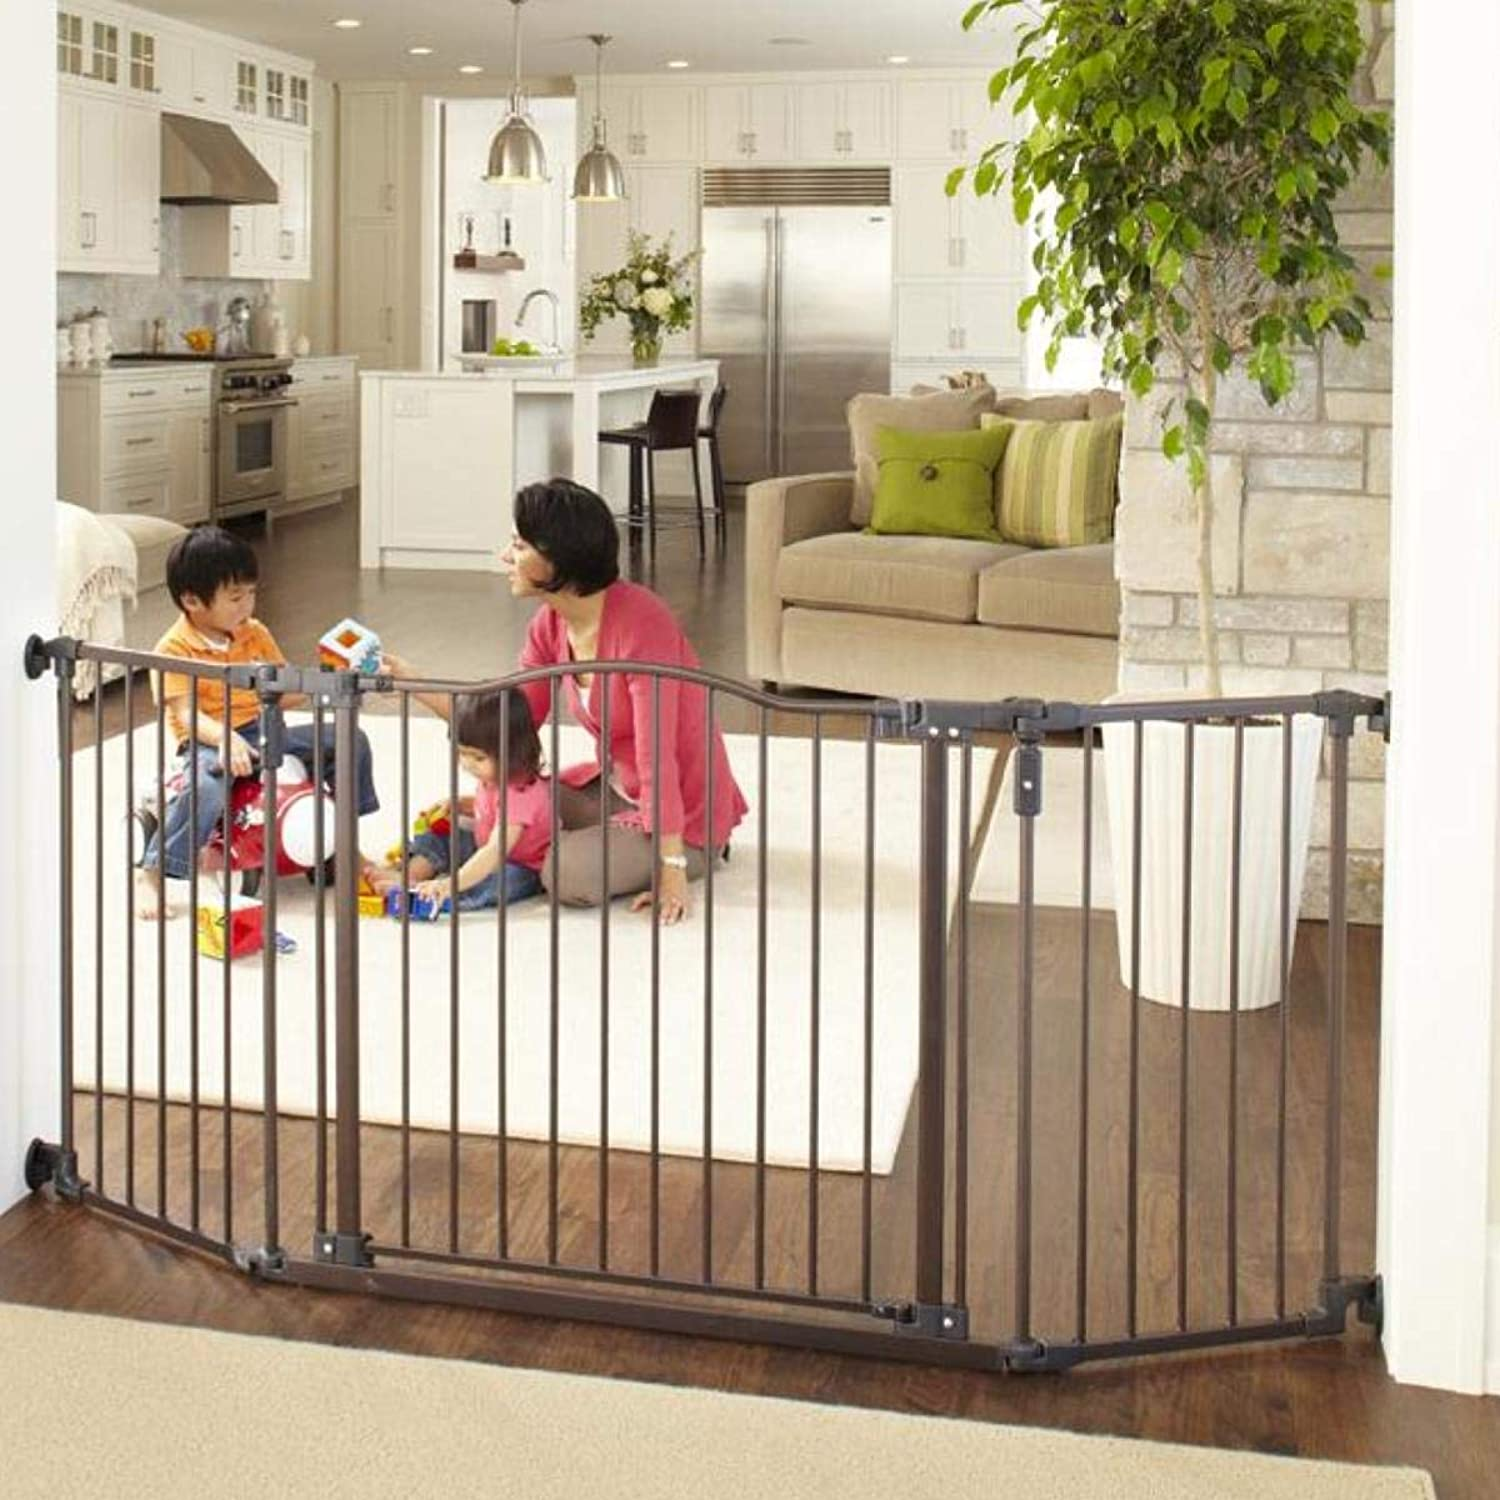 North States 72  Wide Deluxe Décor Baby Gate  Provides safety in extrawide spaces with added onehand functionality. Hardware mount. Fits 38.3 72  wide (30  tall, Bronze)